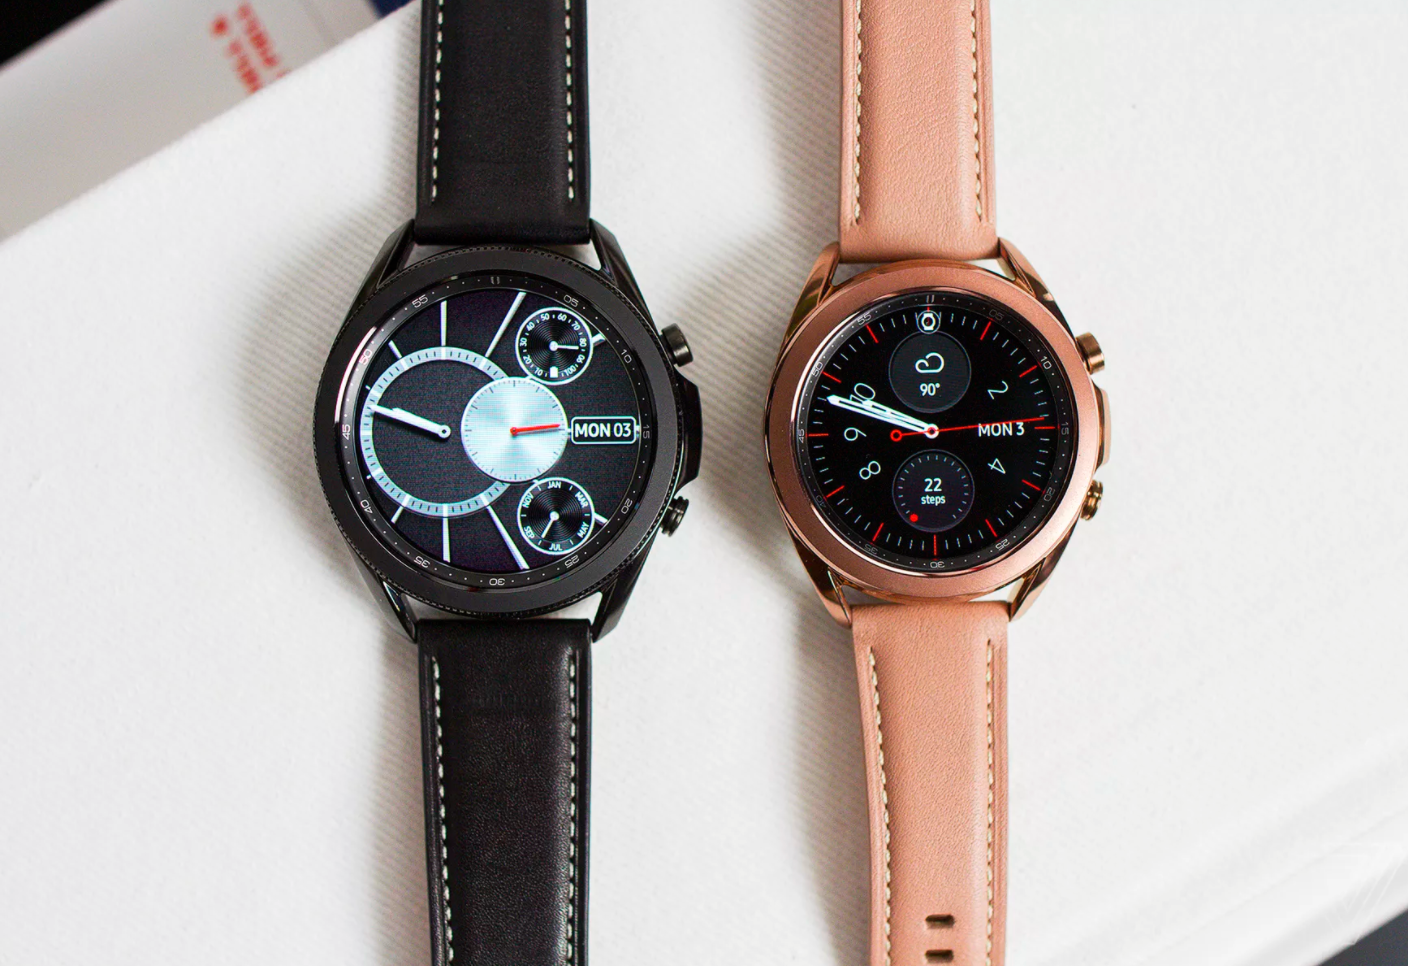 Samsung Galaxy Watch bands on the Galaxy Watch 3?